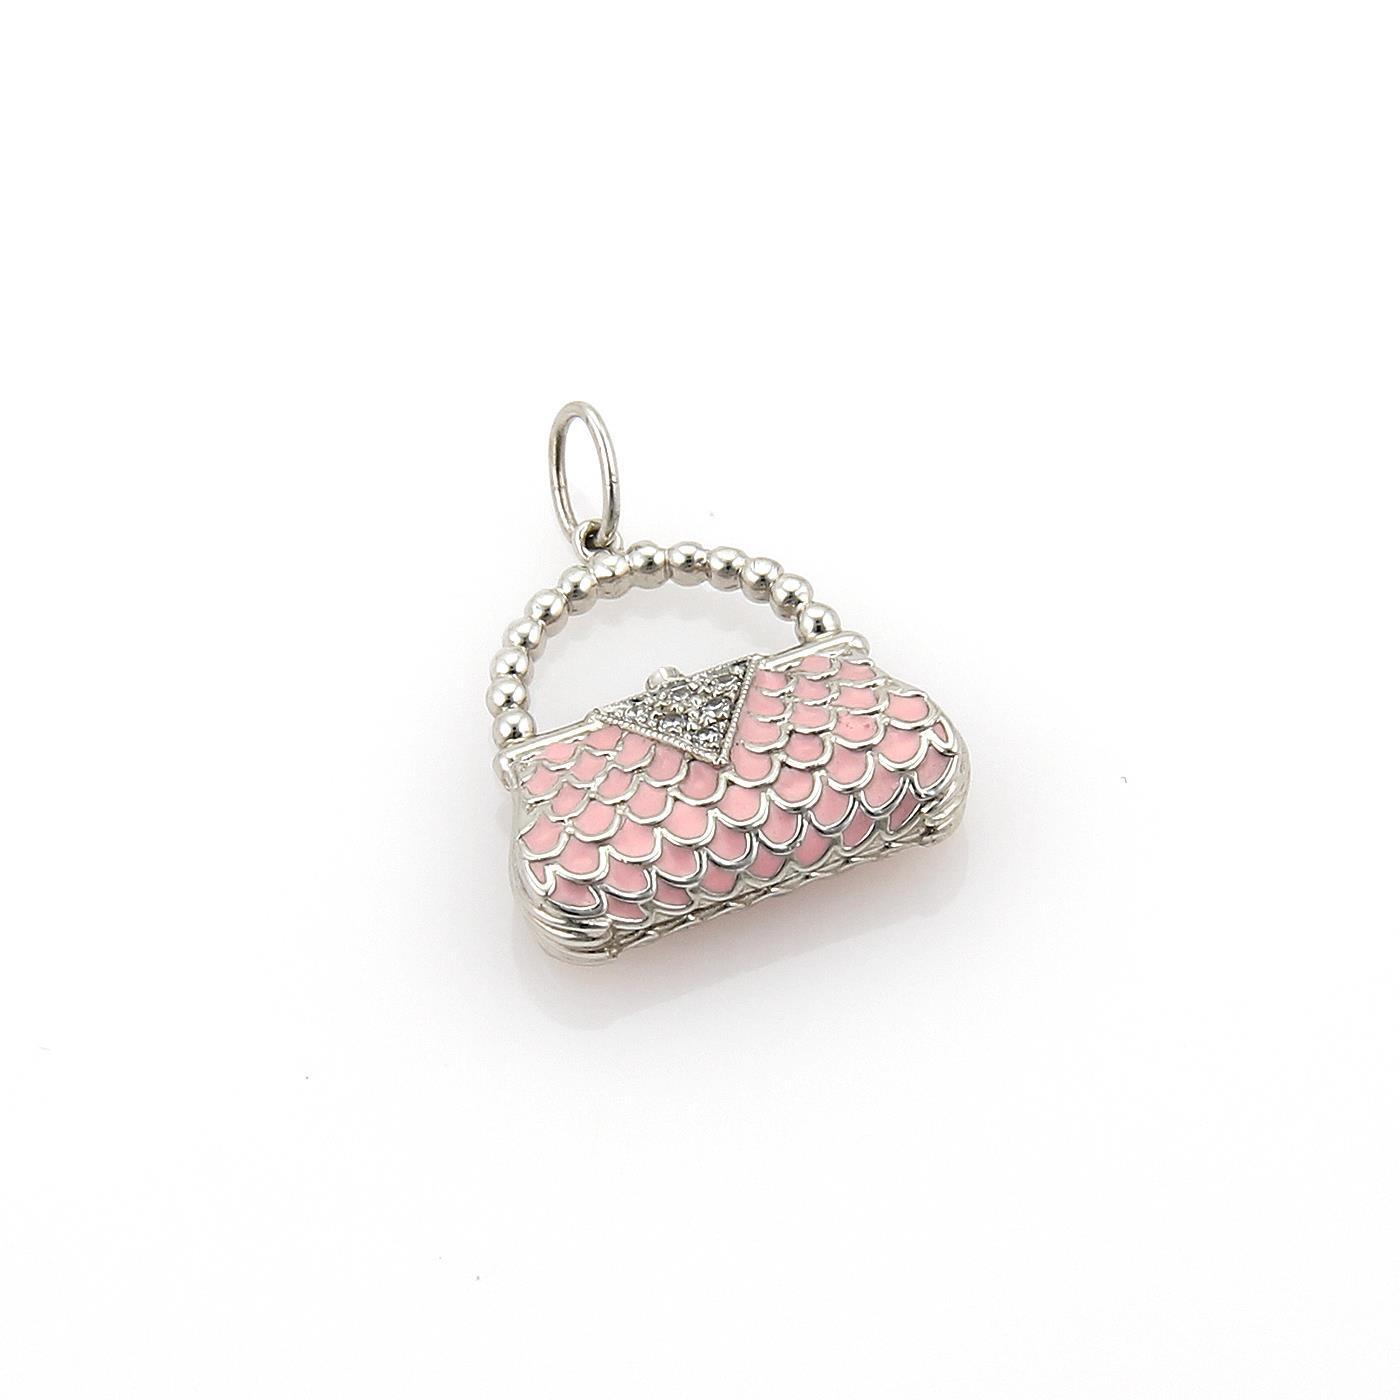 "Image of ""Tiffany & Co. Platinum Diamonds & Enamel Classic Clutch Purse Charm"""